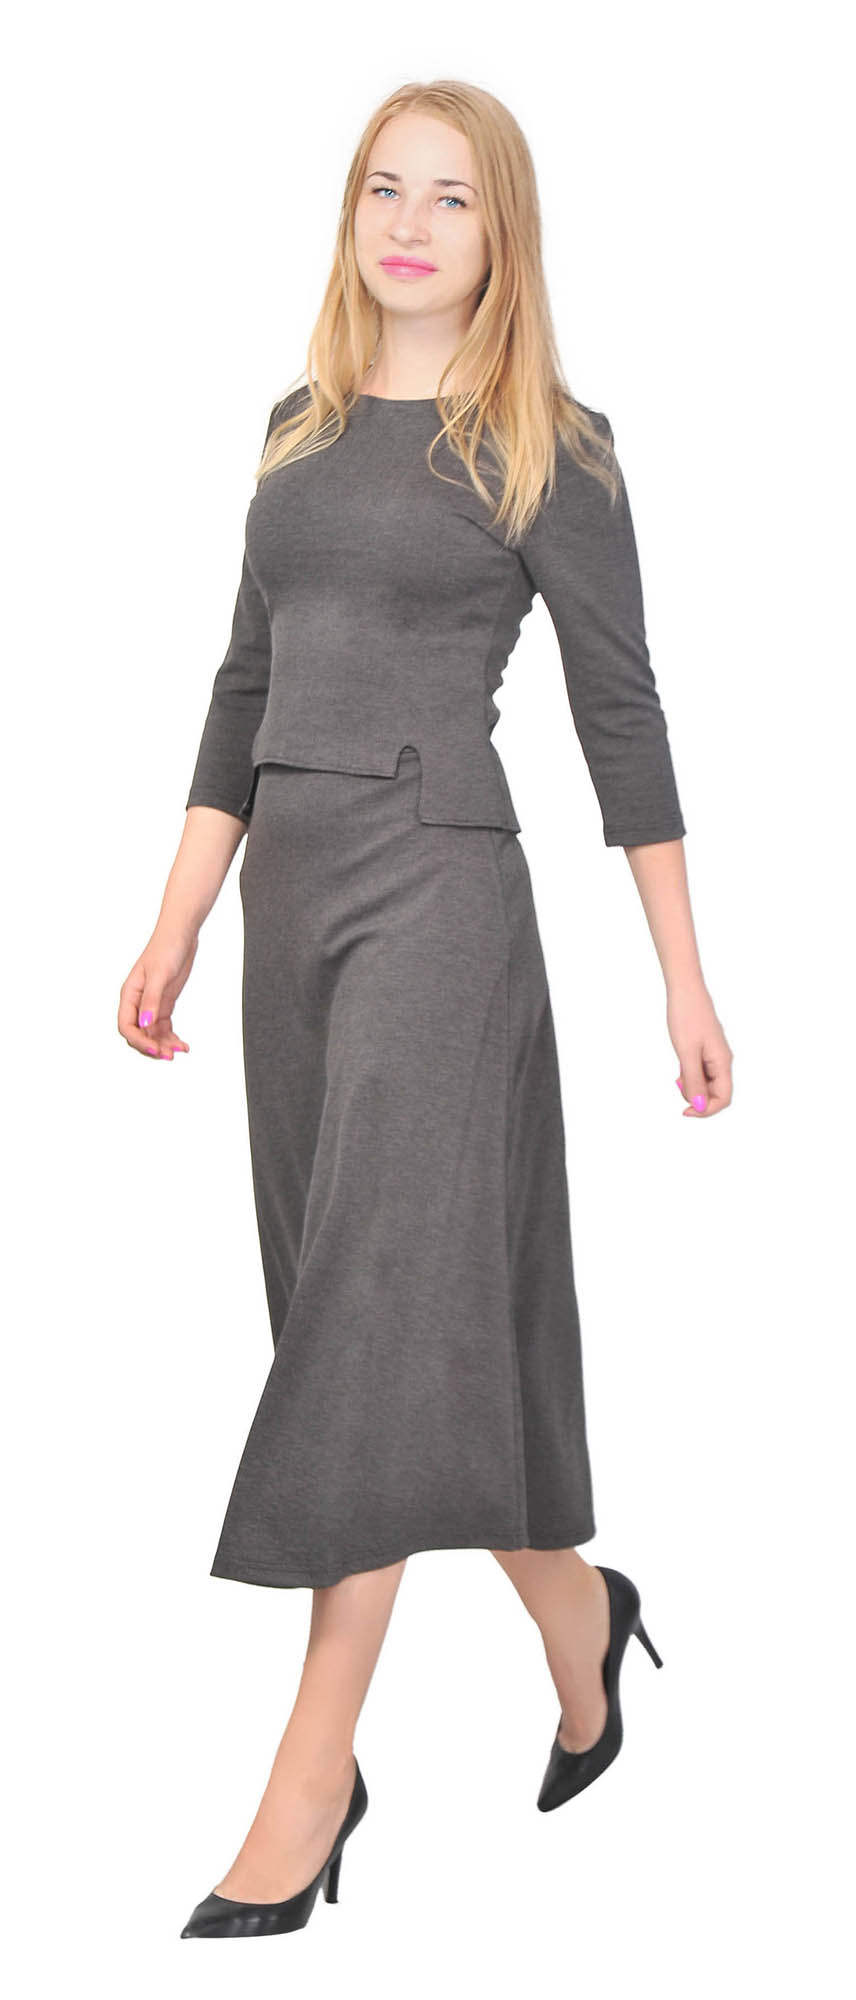 Marycrafts Women's Stylish Jacket Pencil Midi Skirt Office Suit Gear up your career with this sotisficated suit! You'll own the ladylike and polite appearance thanks to this awesome design.